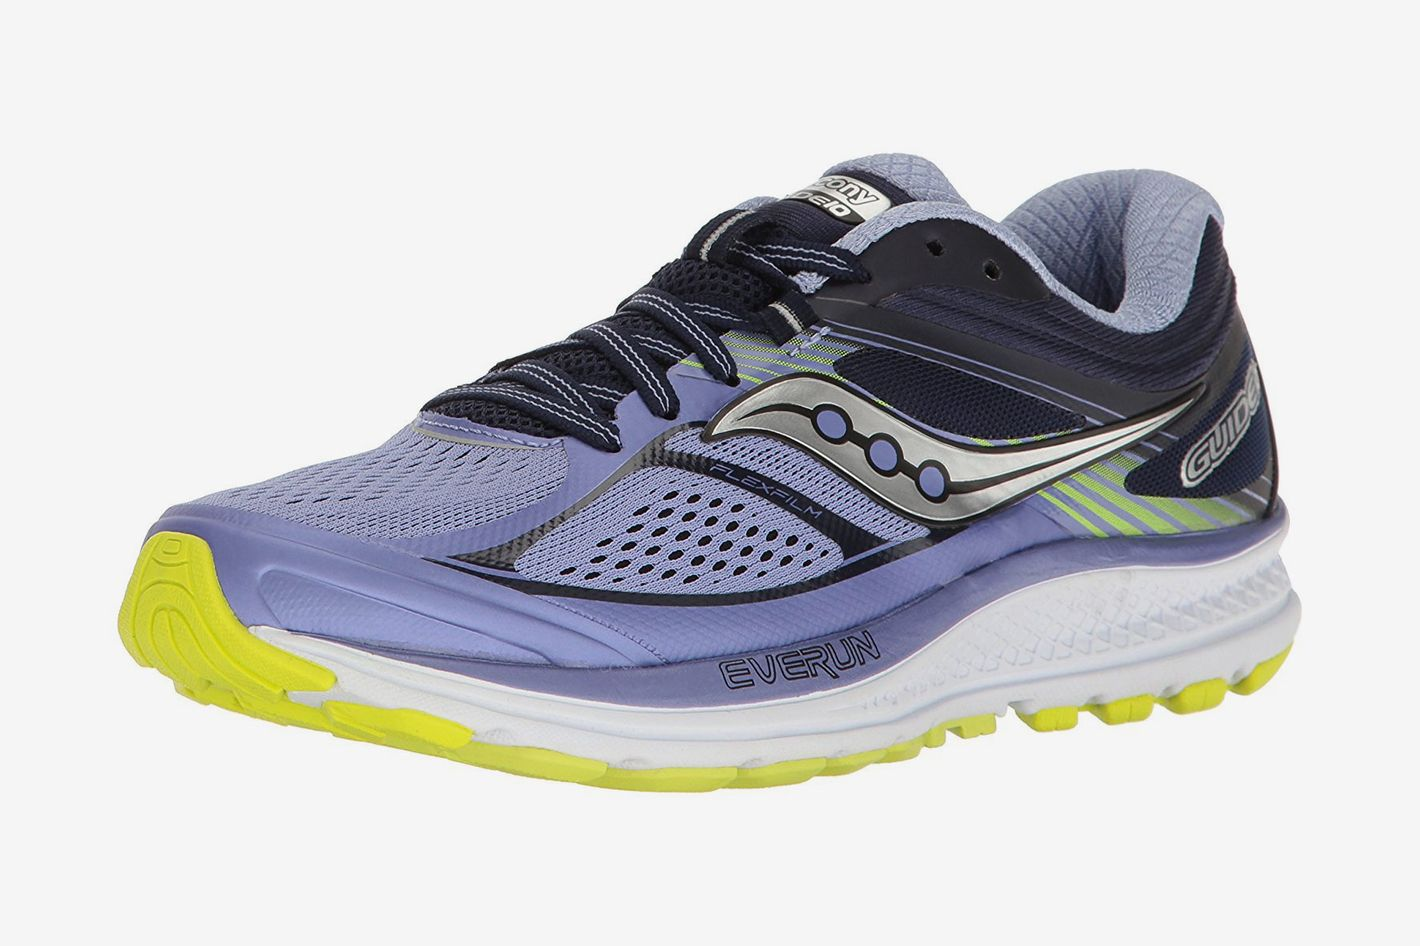 separation shoes 2ef37 d285f Saucony Women s Guide 10 Running Shoe at Amazon. Buy · Nike ...